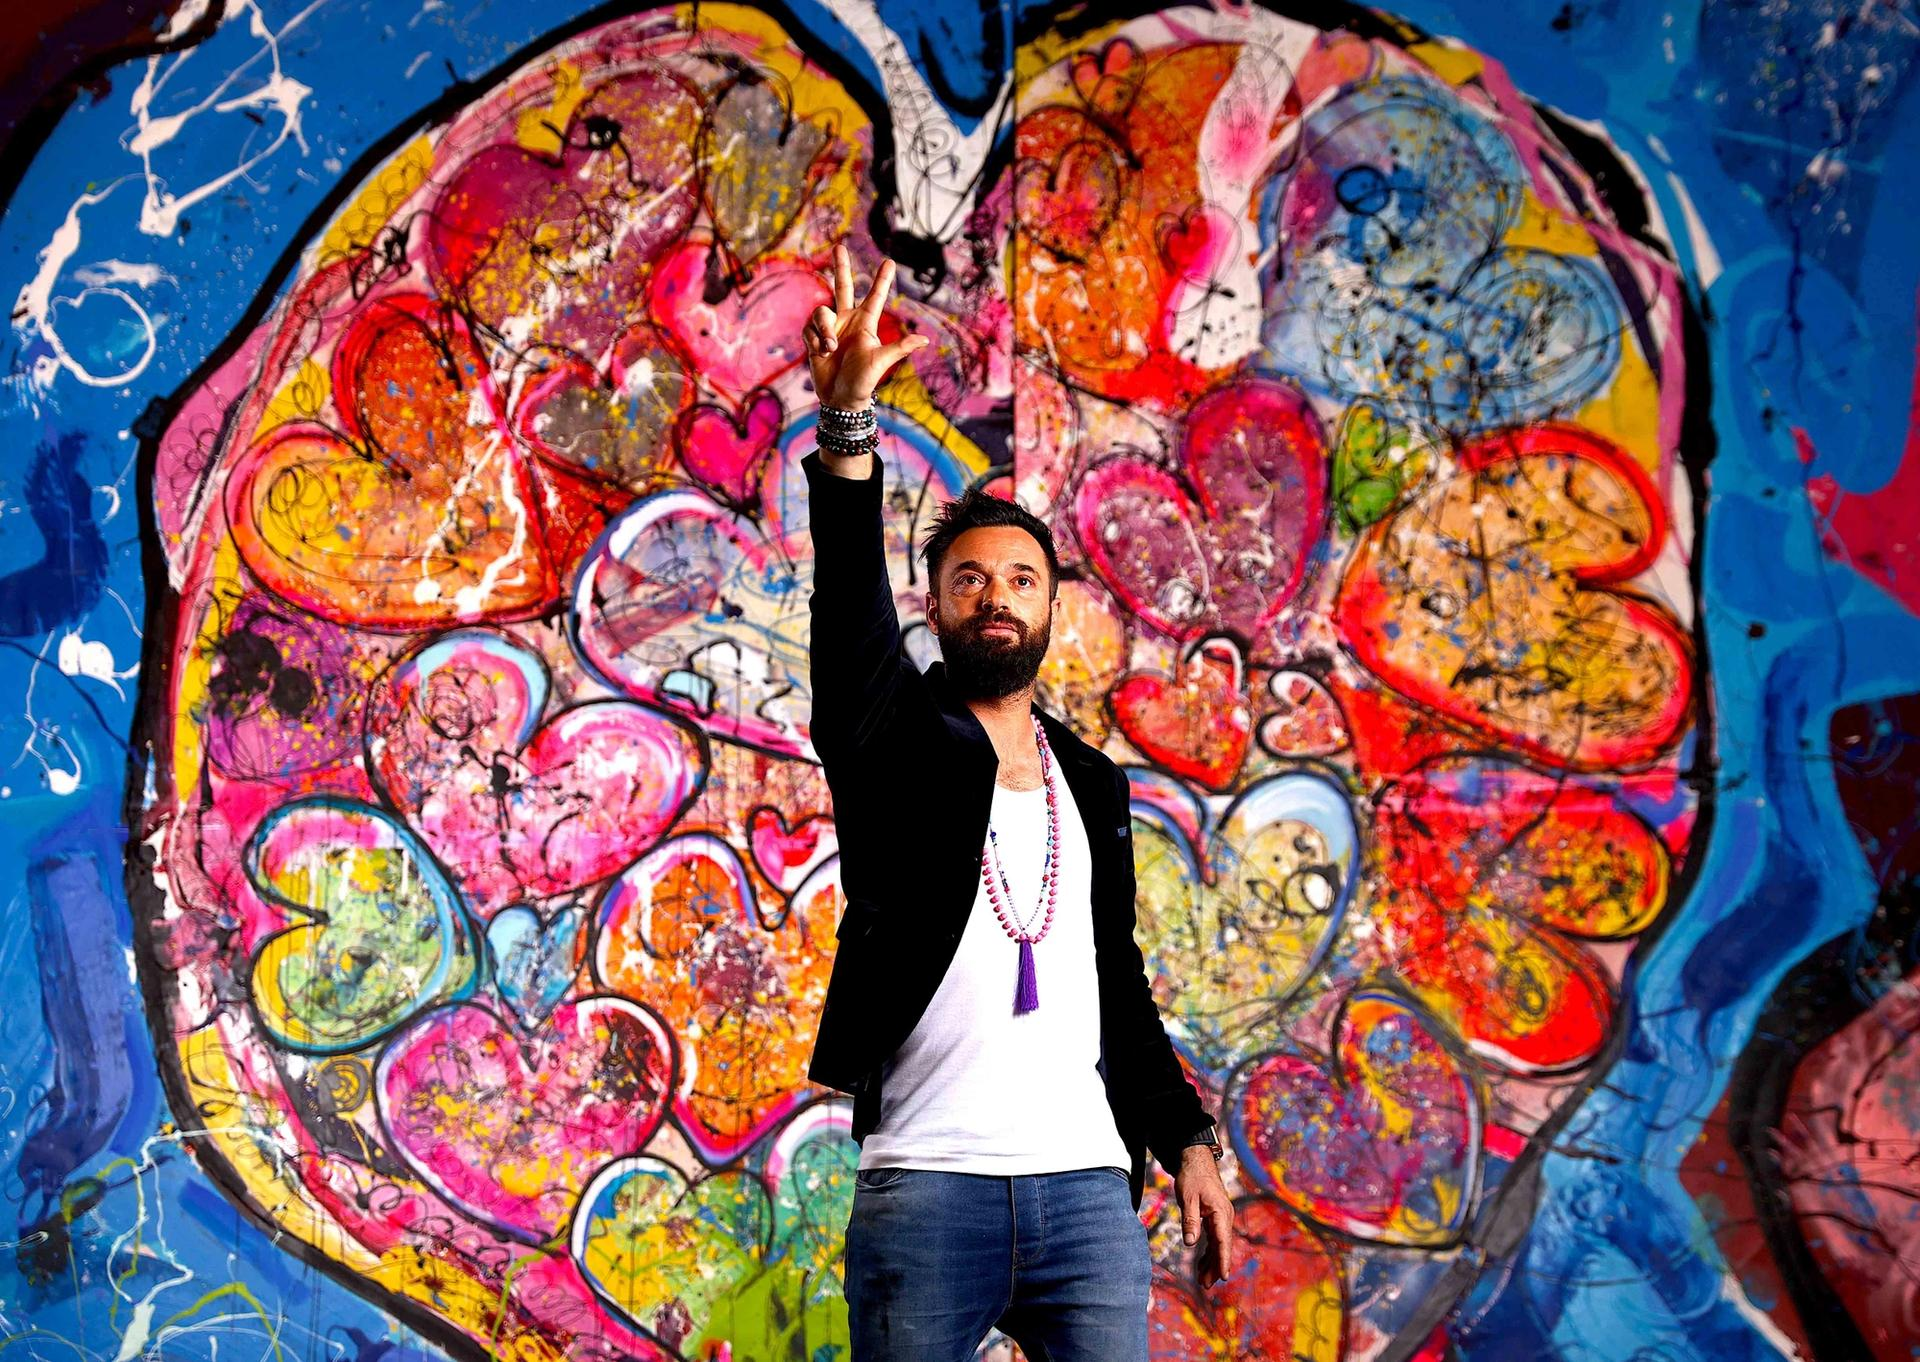 Sacha Jafri in front of the painting that contains Will Smith's handprints, titled The Journey of Humanity—With Love we are Reconnected, Inspired, Re-Energized Courtesy of Sacha Jafri